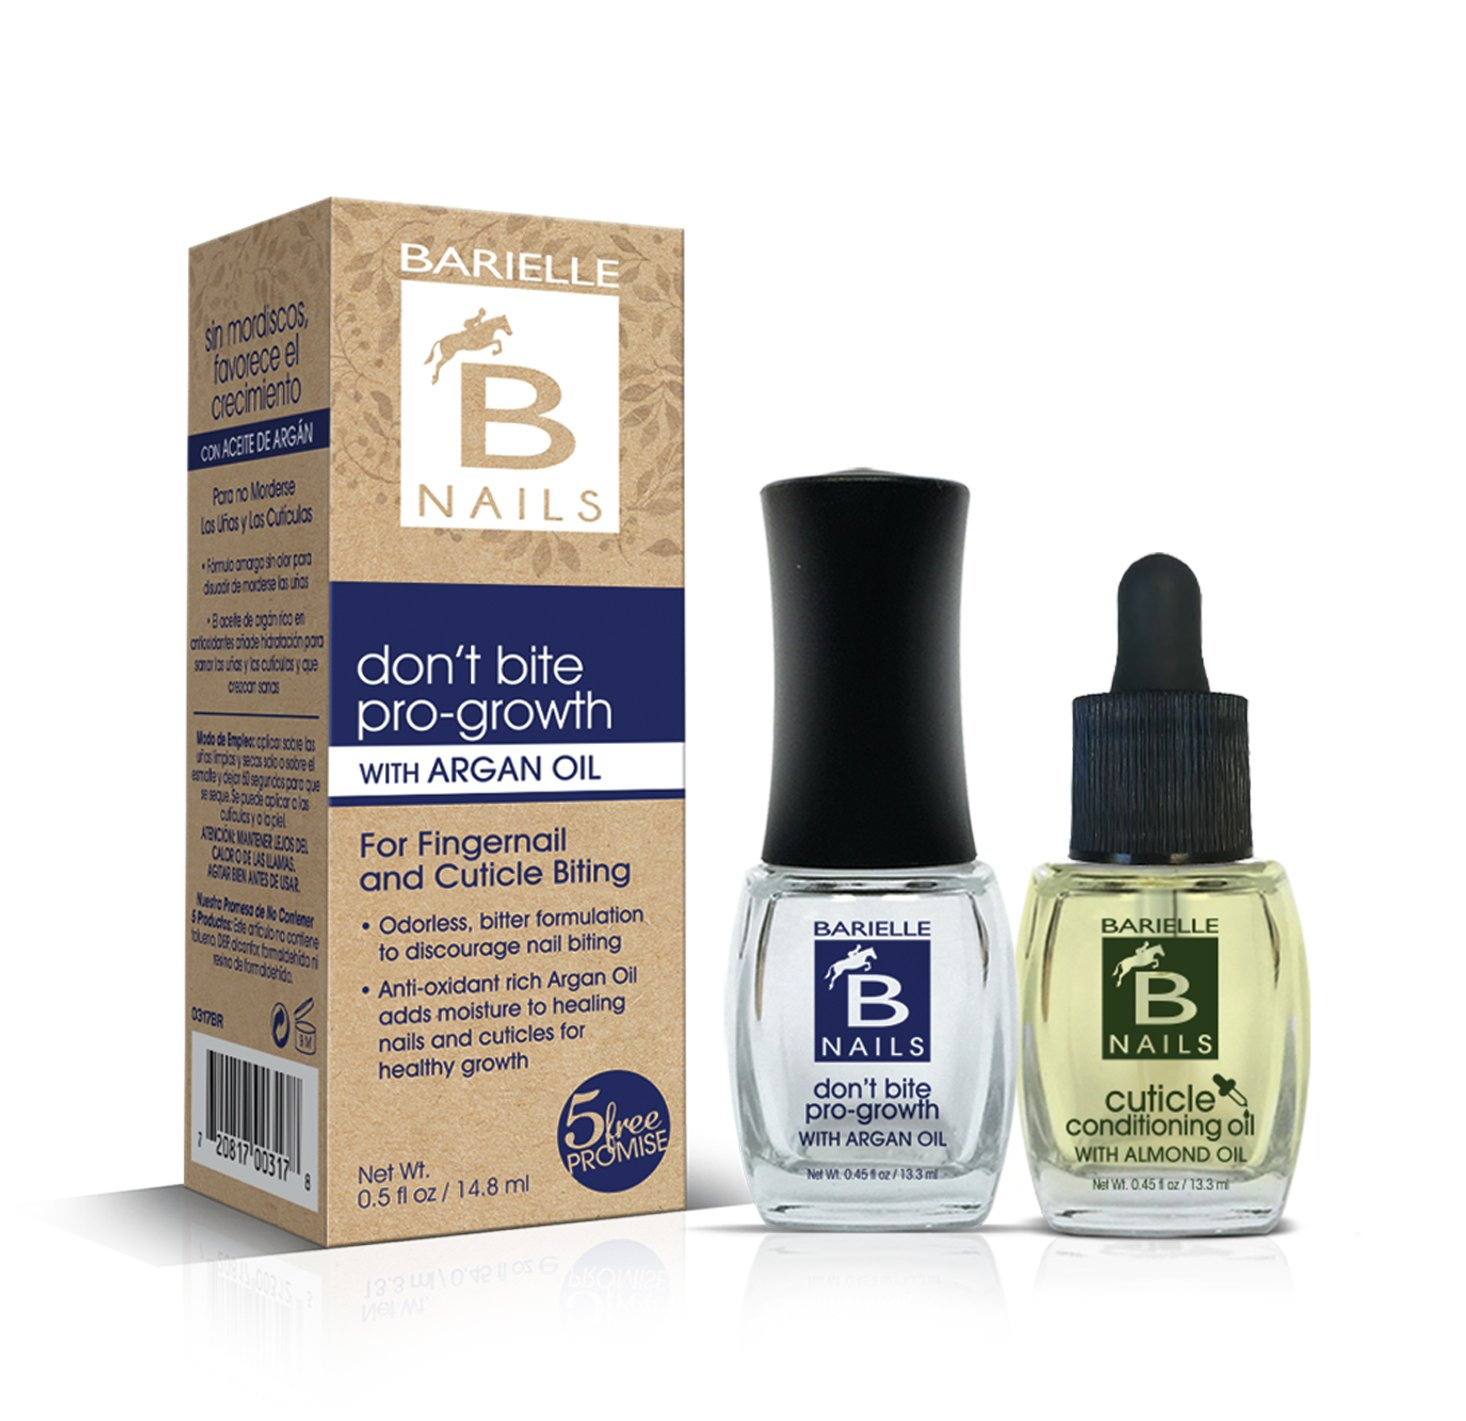 Barielle Stop Nail Biting with Don't Bite Pro-growth with Argan Oil AND Cuticle Conditioning Oil with a Dropper